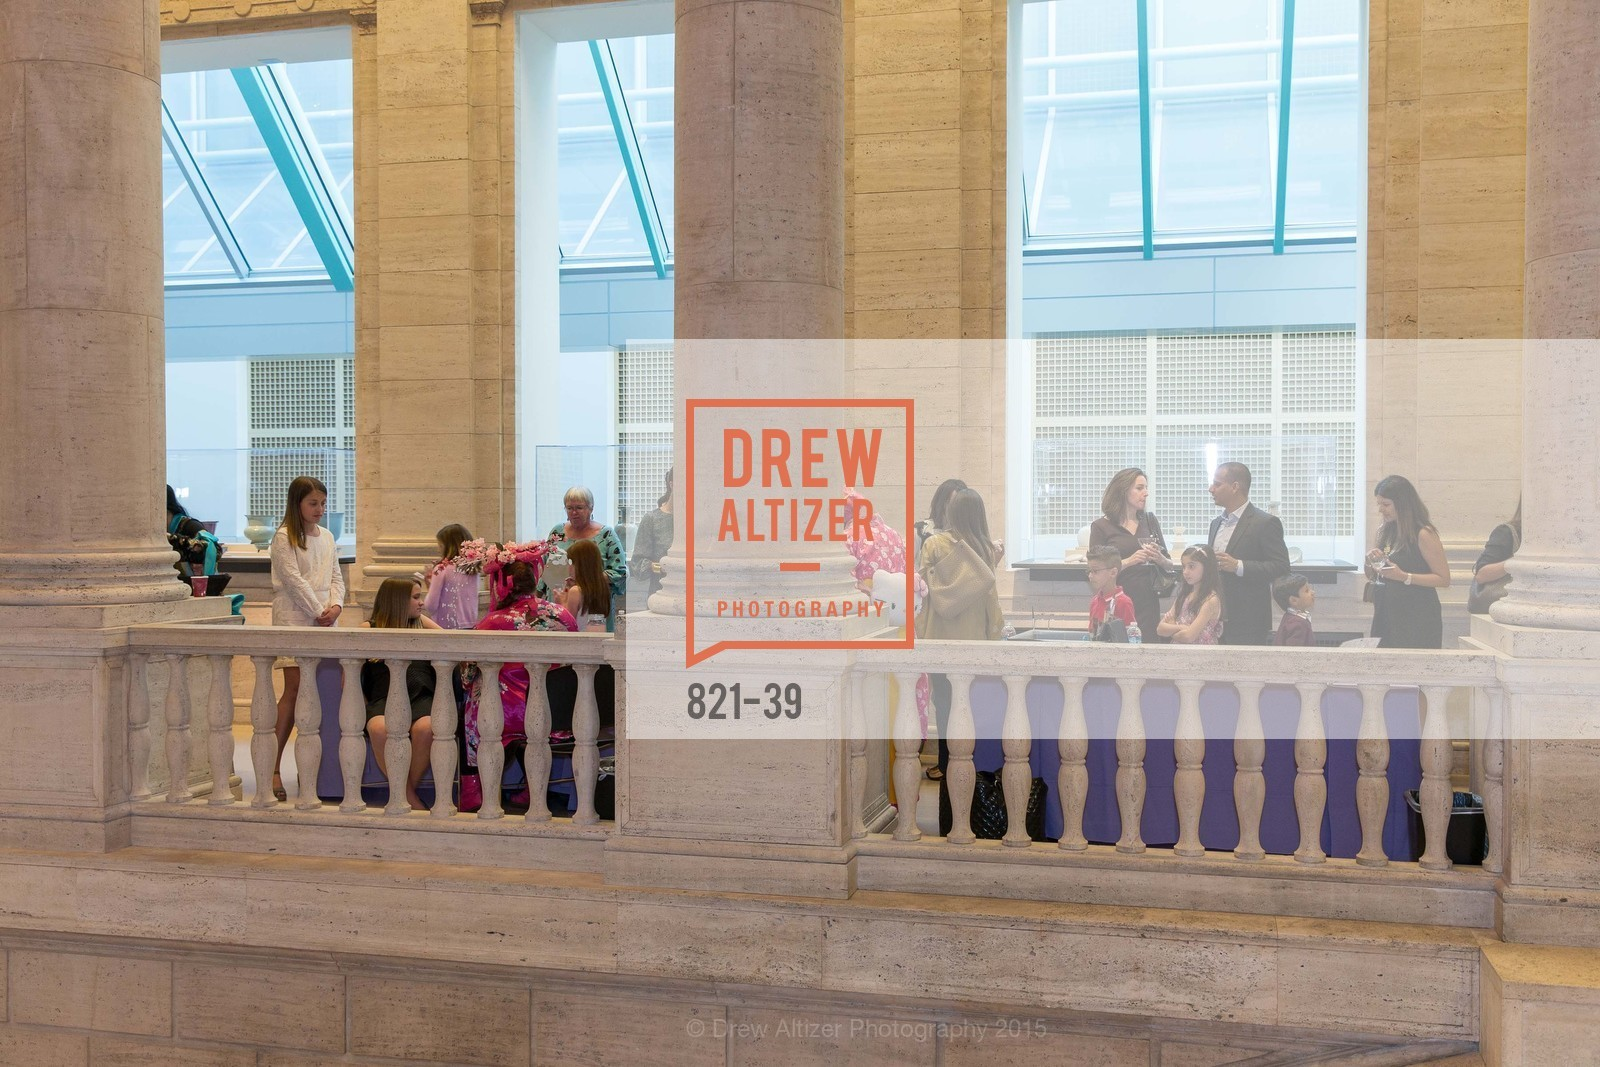 Extras, ASIAN ART MUSEUM Presents Once Upon a Time in Tokyo, April 17th, 2015, Photo,Drew Altizer, Drew Altizer Photography, full-service agency, private events, San Francisco photographer, photographer california